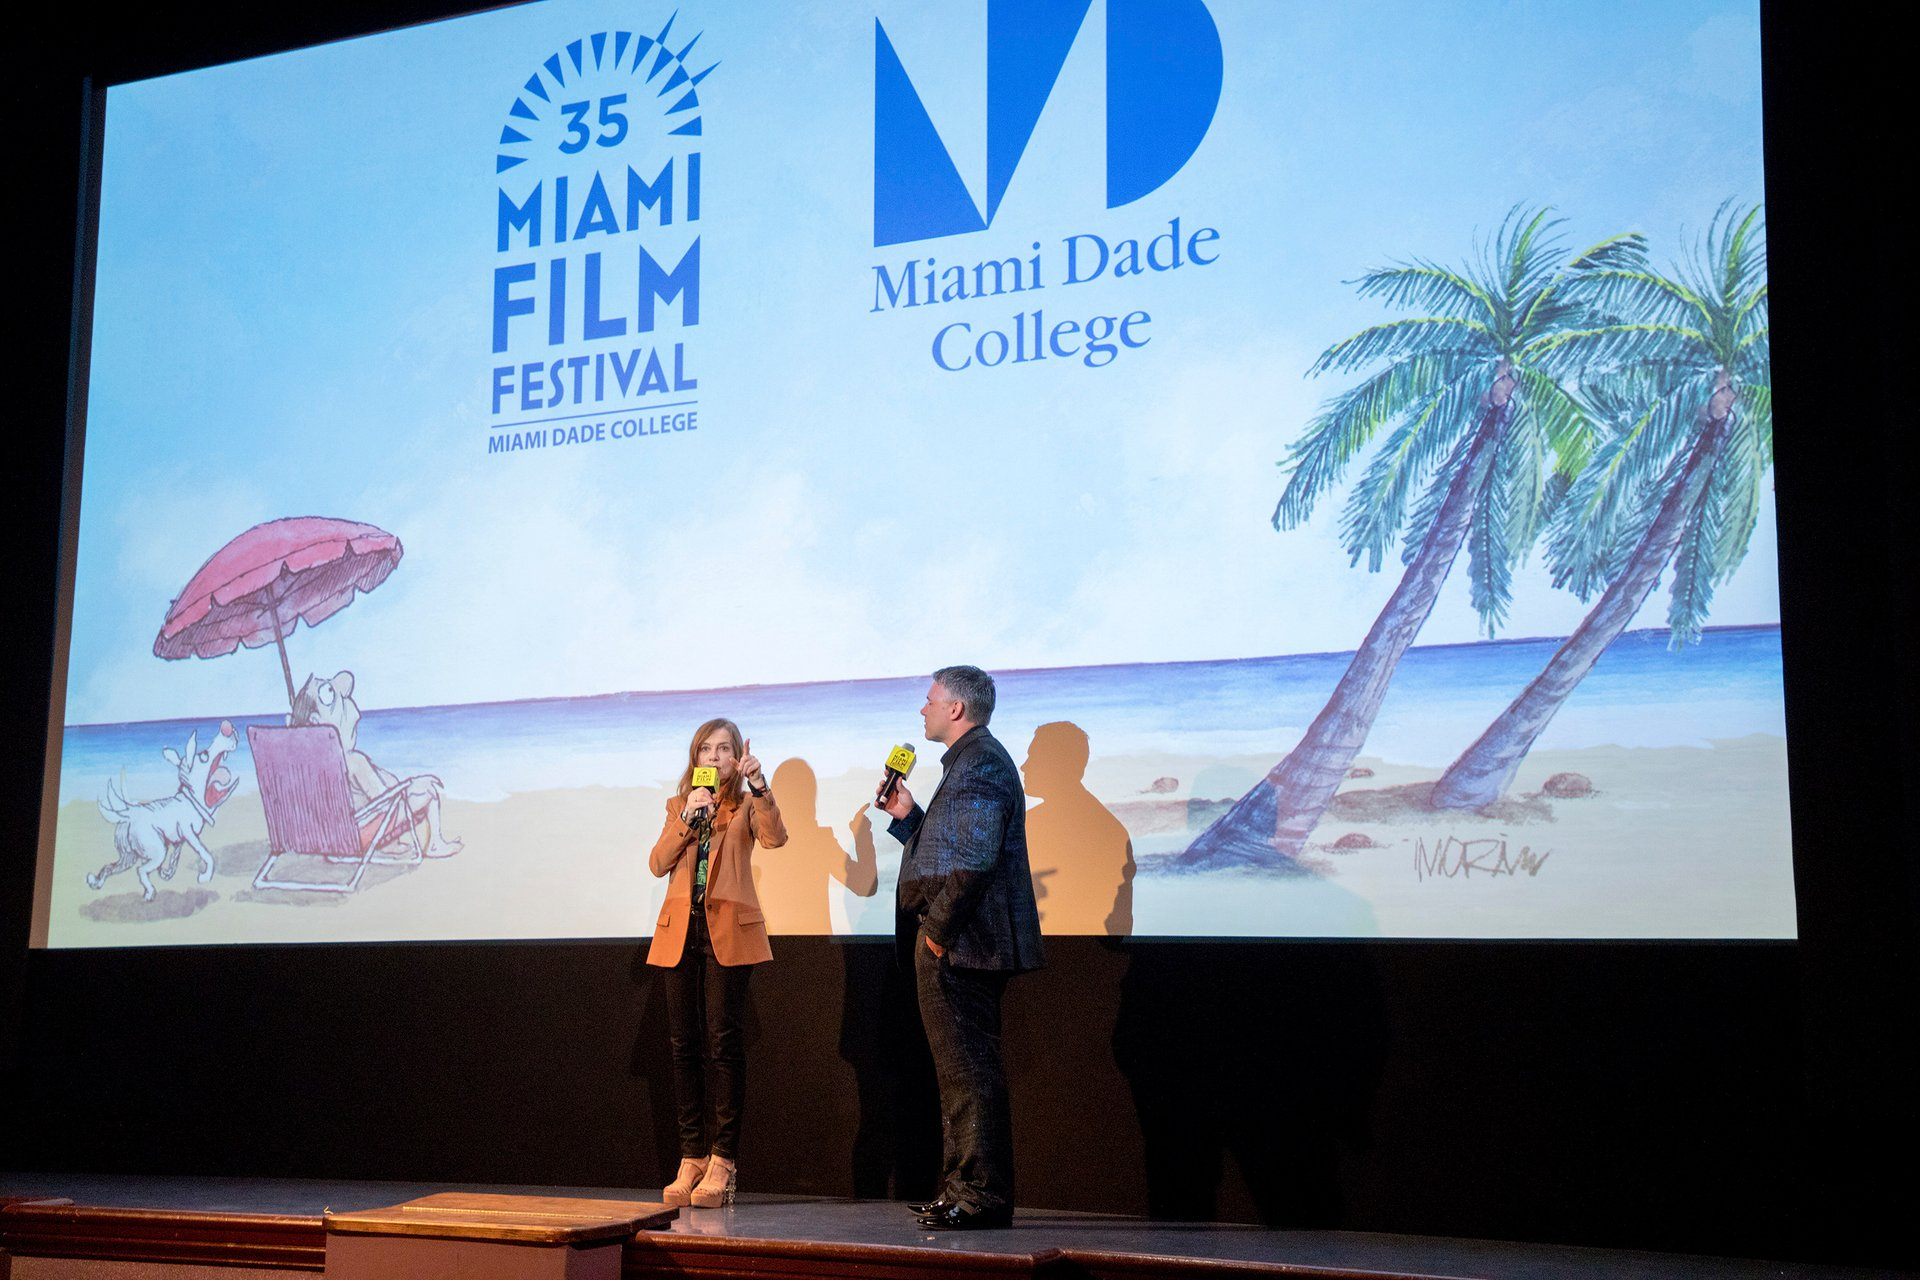 Best time for Miami Film Festival in Miami 2020